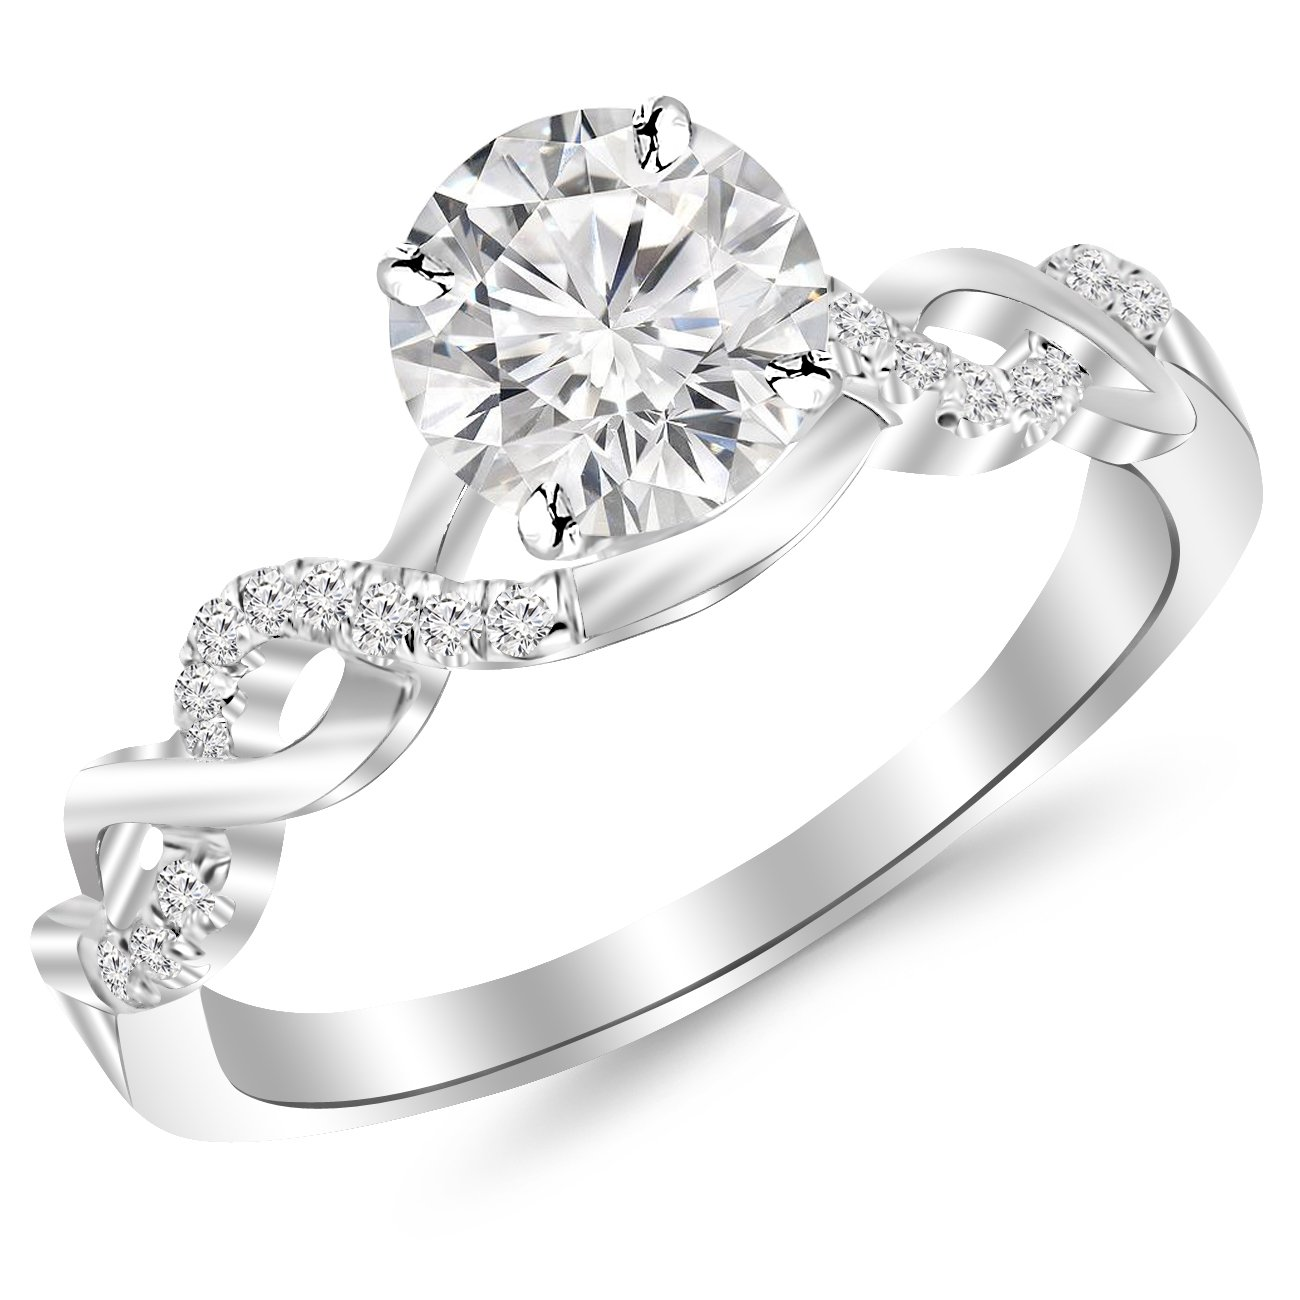 diamong diamond images wedding about rings me for pinterest download ring on inspirational corners